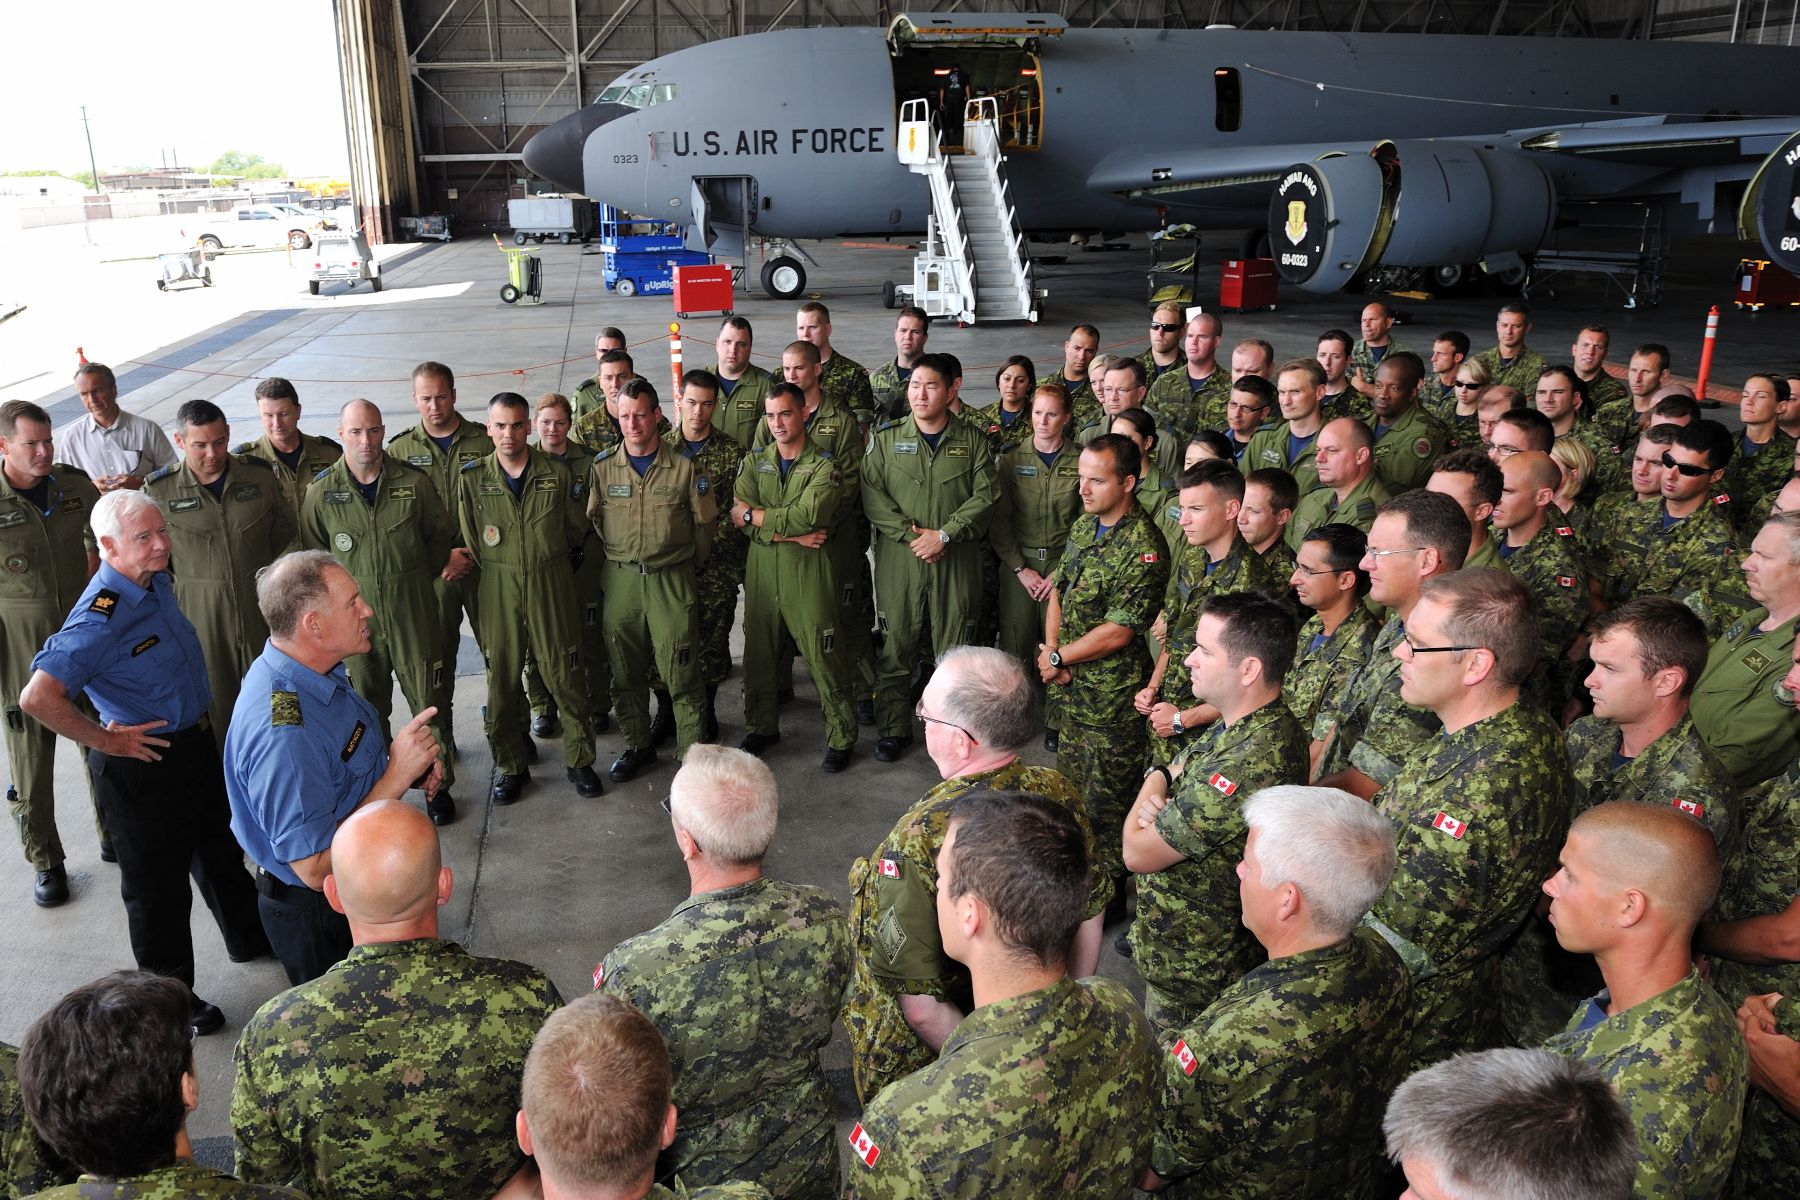 The Governor General and General Walt Natynczyk, Chief of the Defence Staff, took the opportunity to meet and talk with the crew on site.